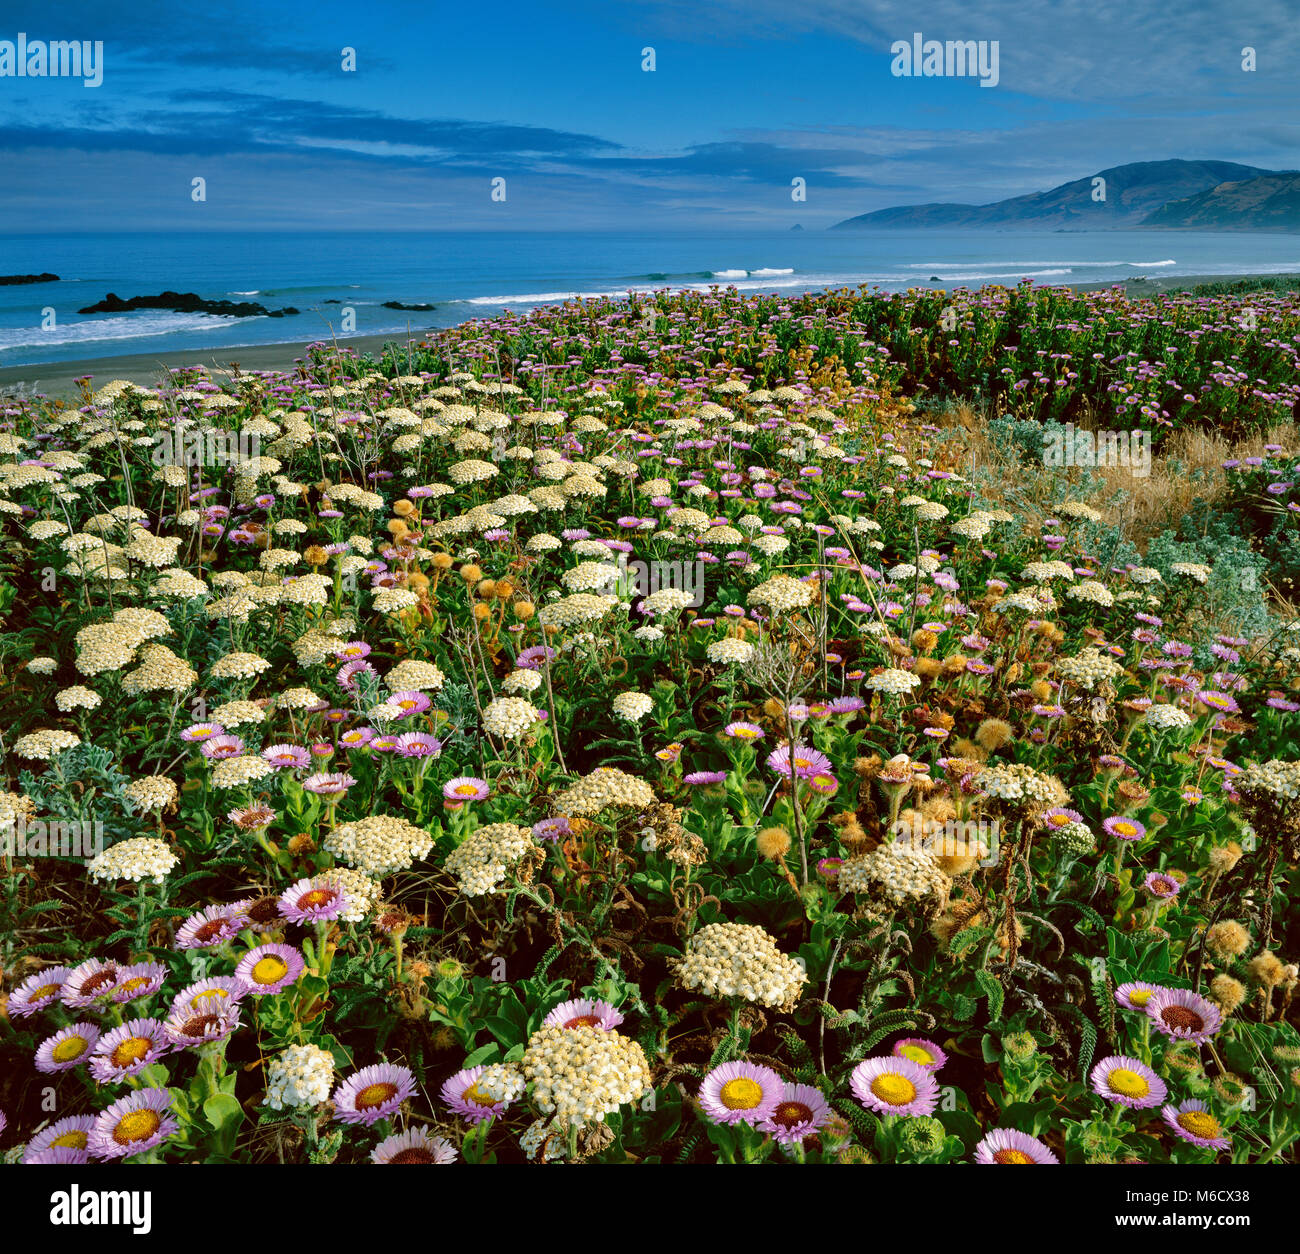 Angelica, Angelica californica, Asters, Erigeron glaucus, Mattole Beach, King Range National Conservation Area, - Stock Image